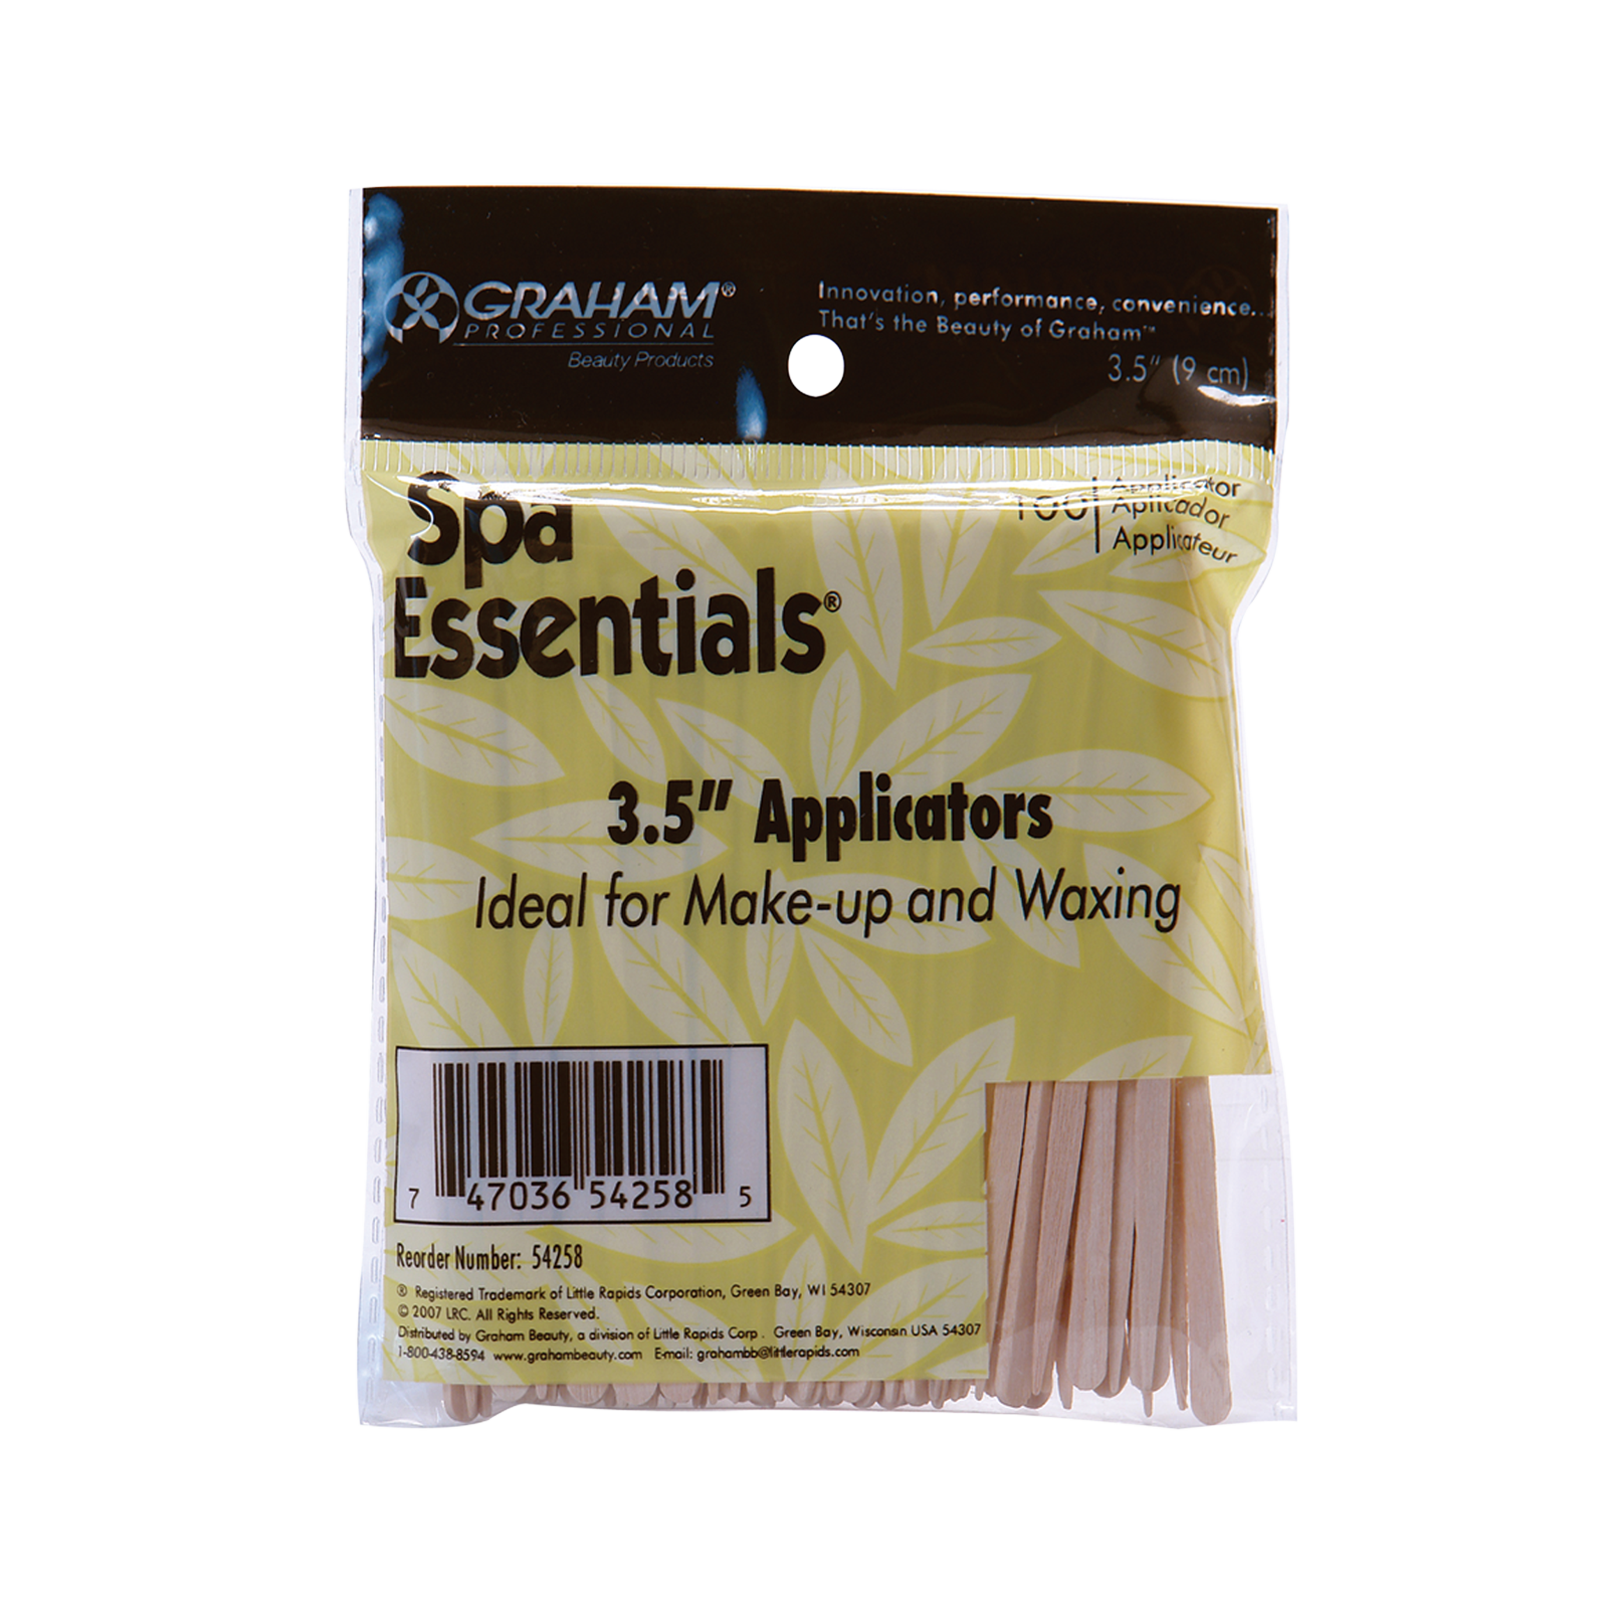 Wood Applicators for Makeup Waxing